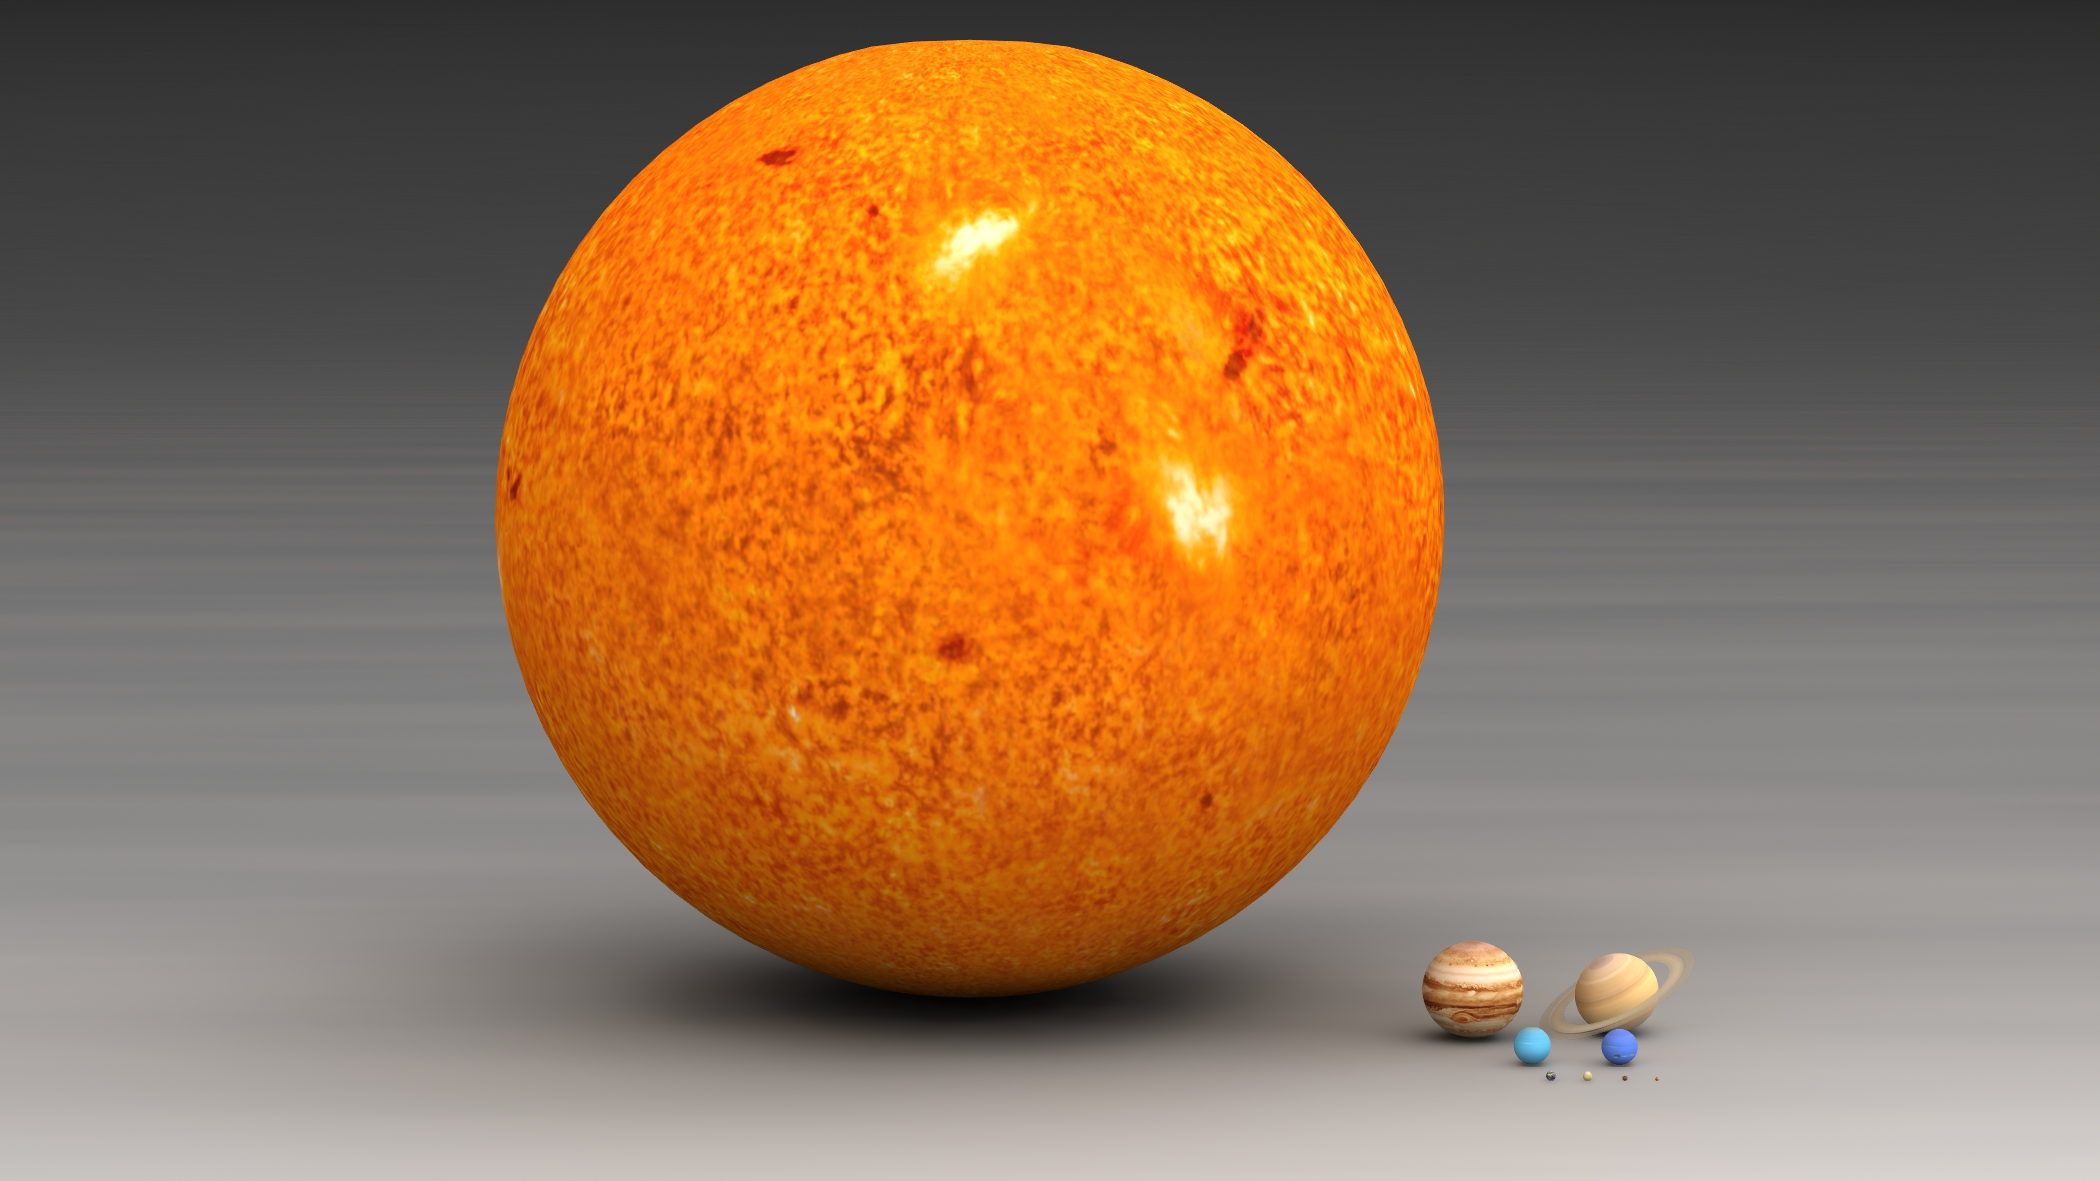 File:Planets and sun size comparison.jpg - Wikimedia Commons